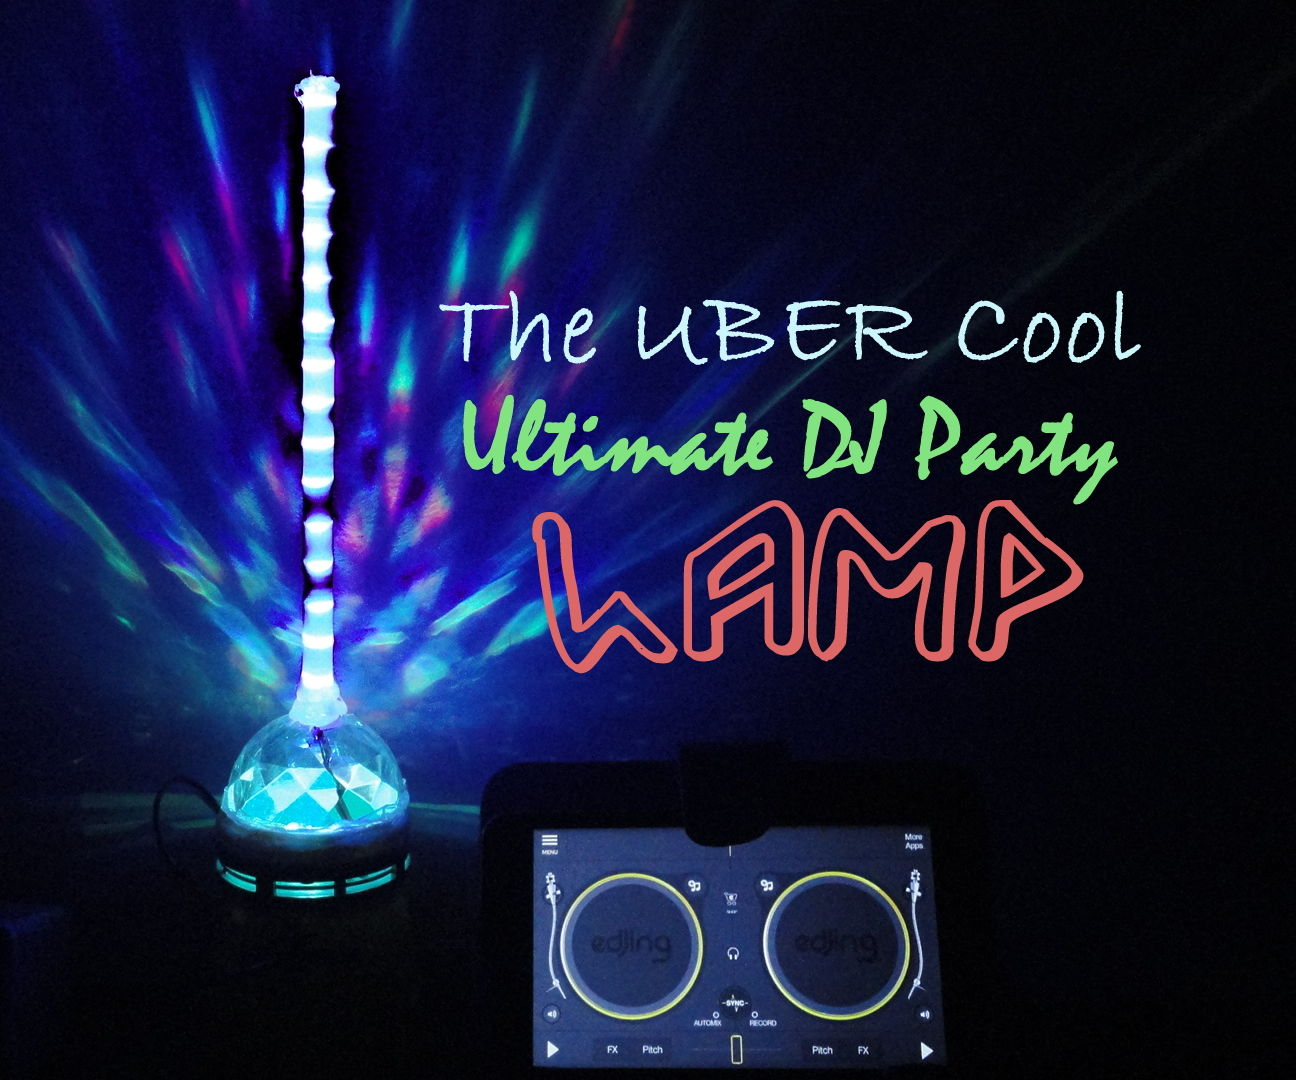 The Uber Cool Ultimate DJ Party Lamp...